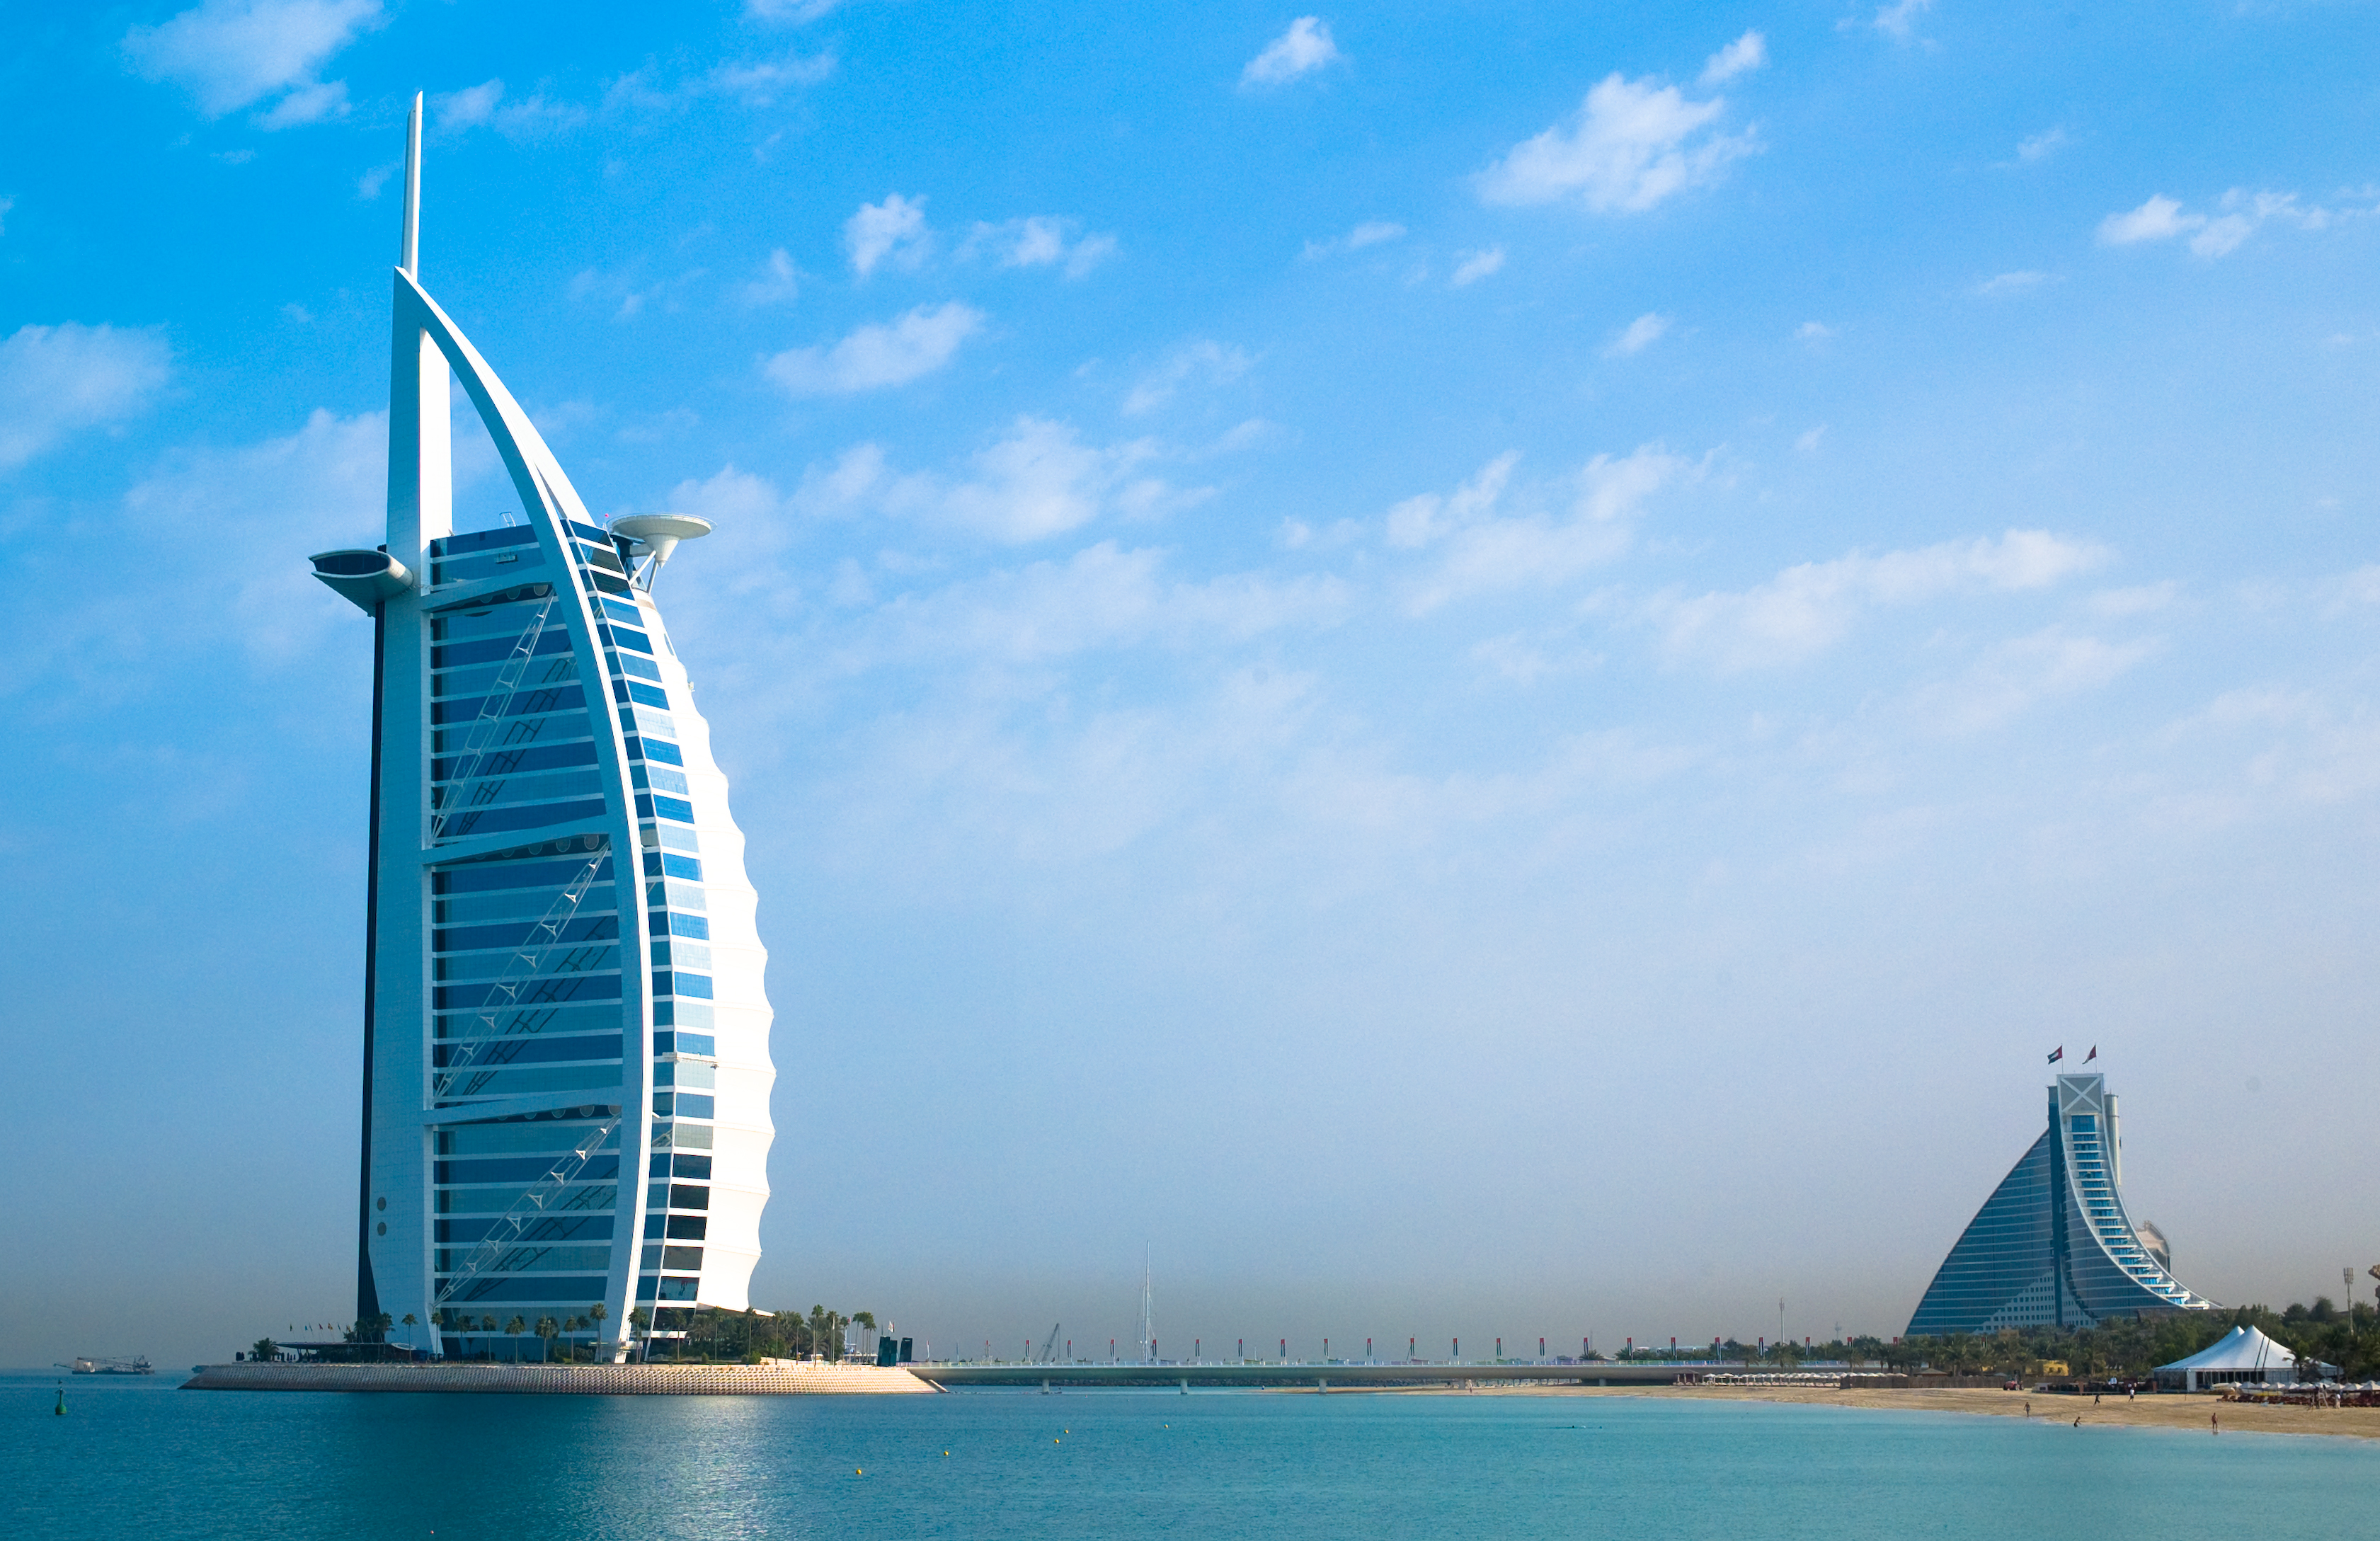 Burj Al Arab Dubai, Latest Job Vacancies in Burj Al Arab-Dubai - Jobzdaily.com